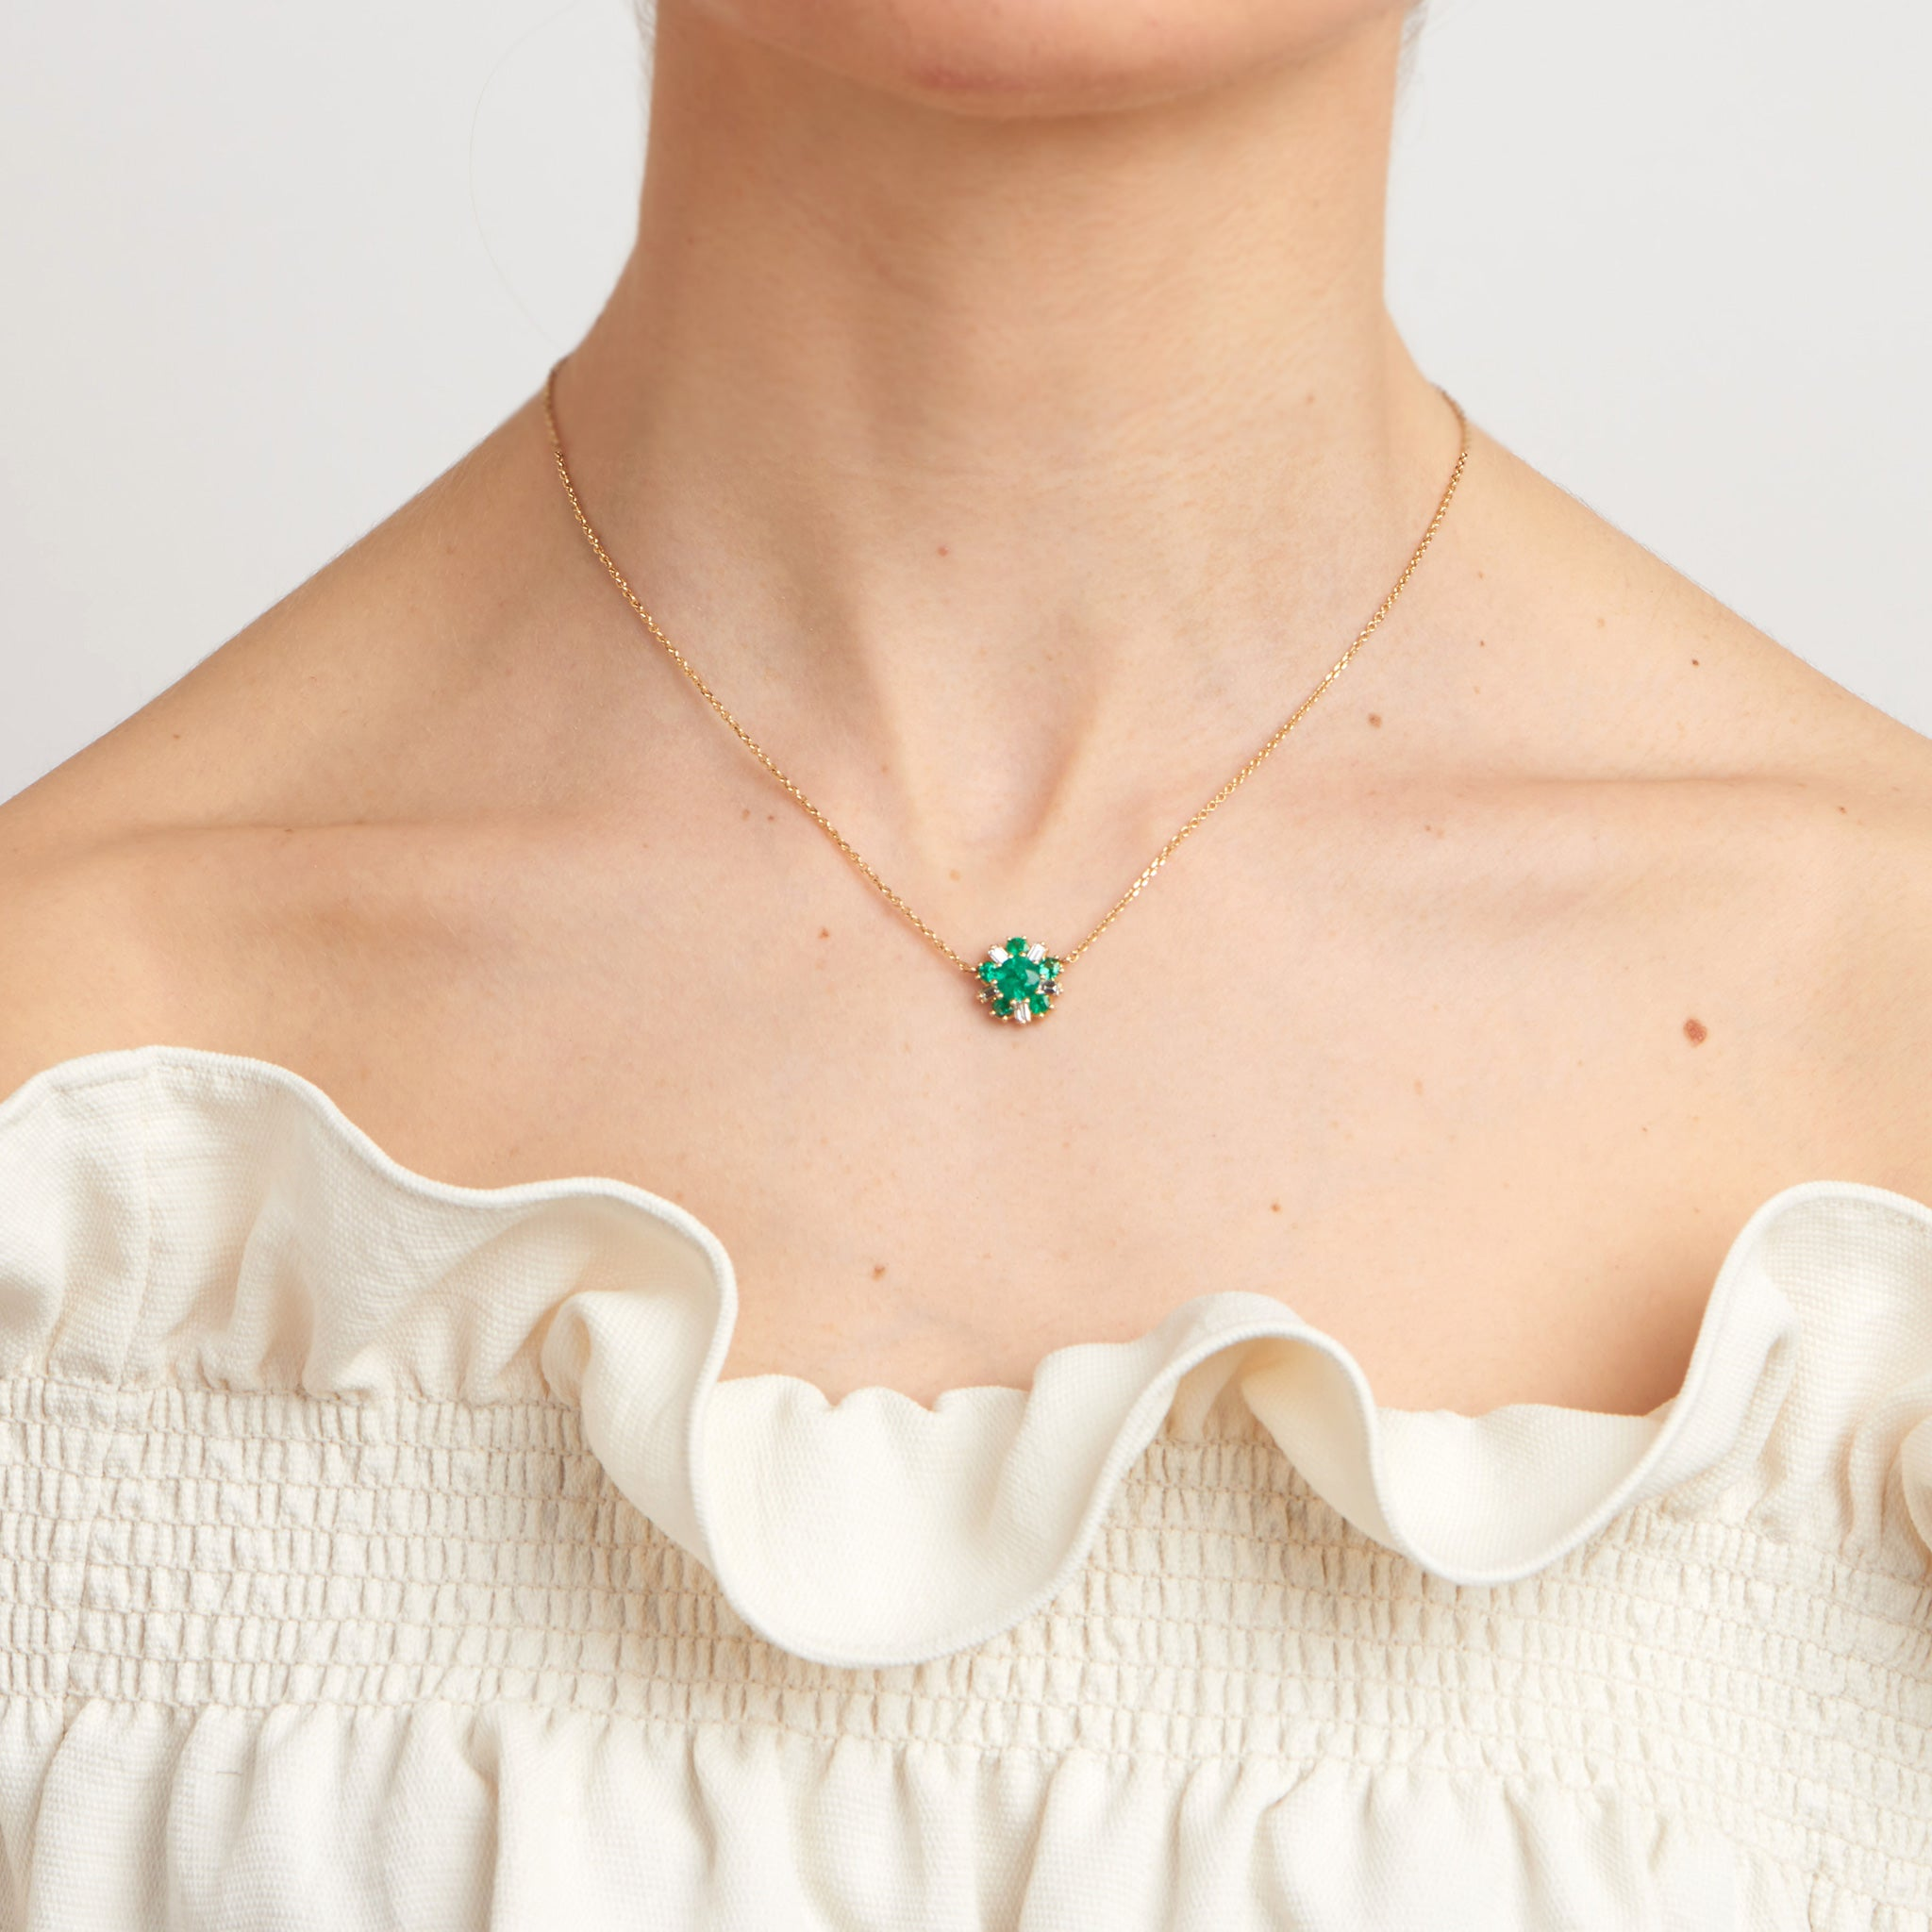 Mimi So Wonderland Ballerina Flower Emerald Necklace